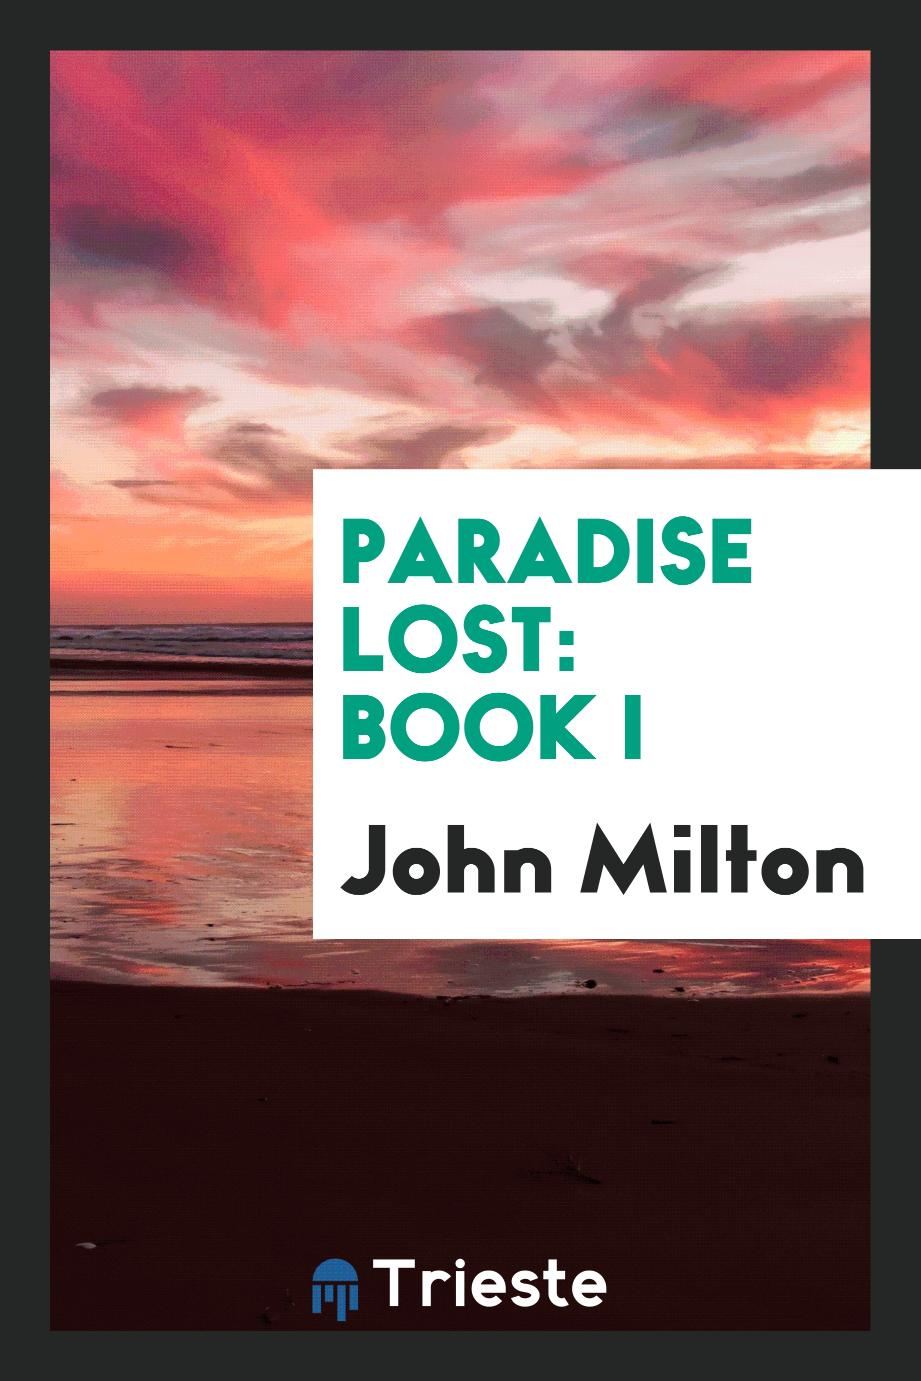 Paradise Lost: Book I